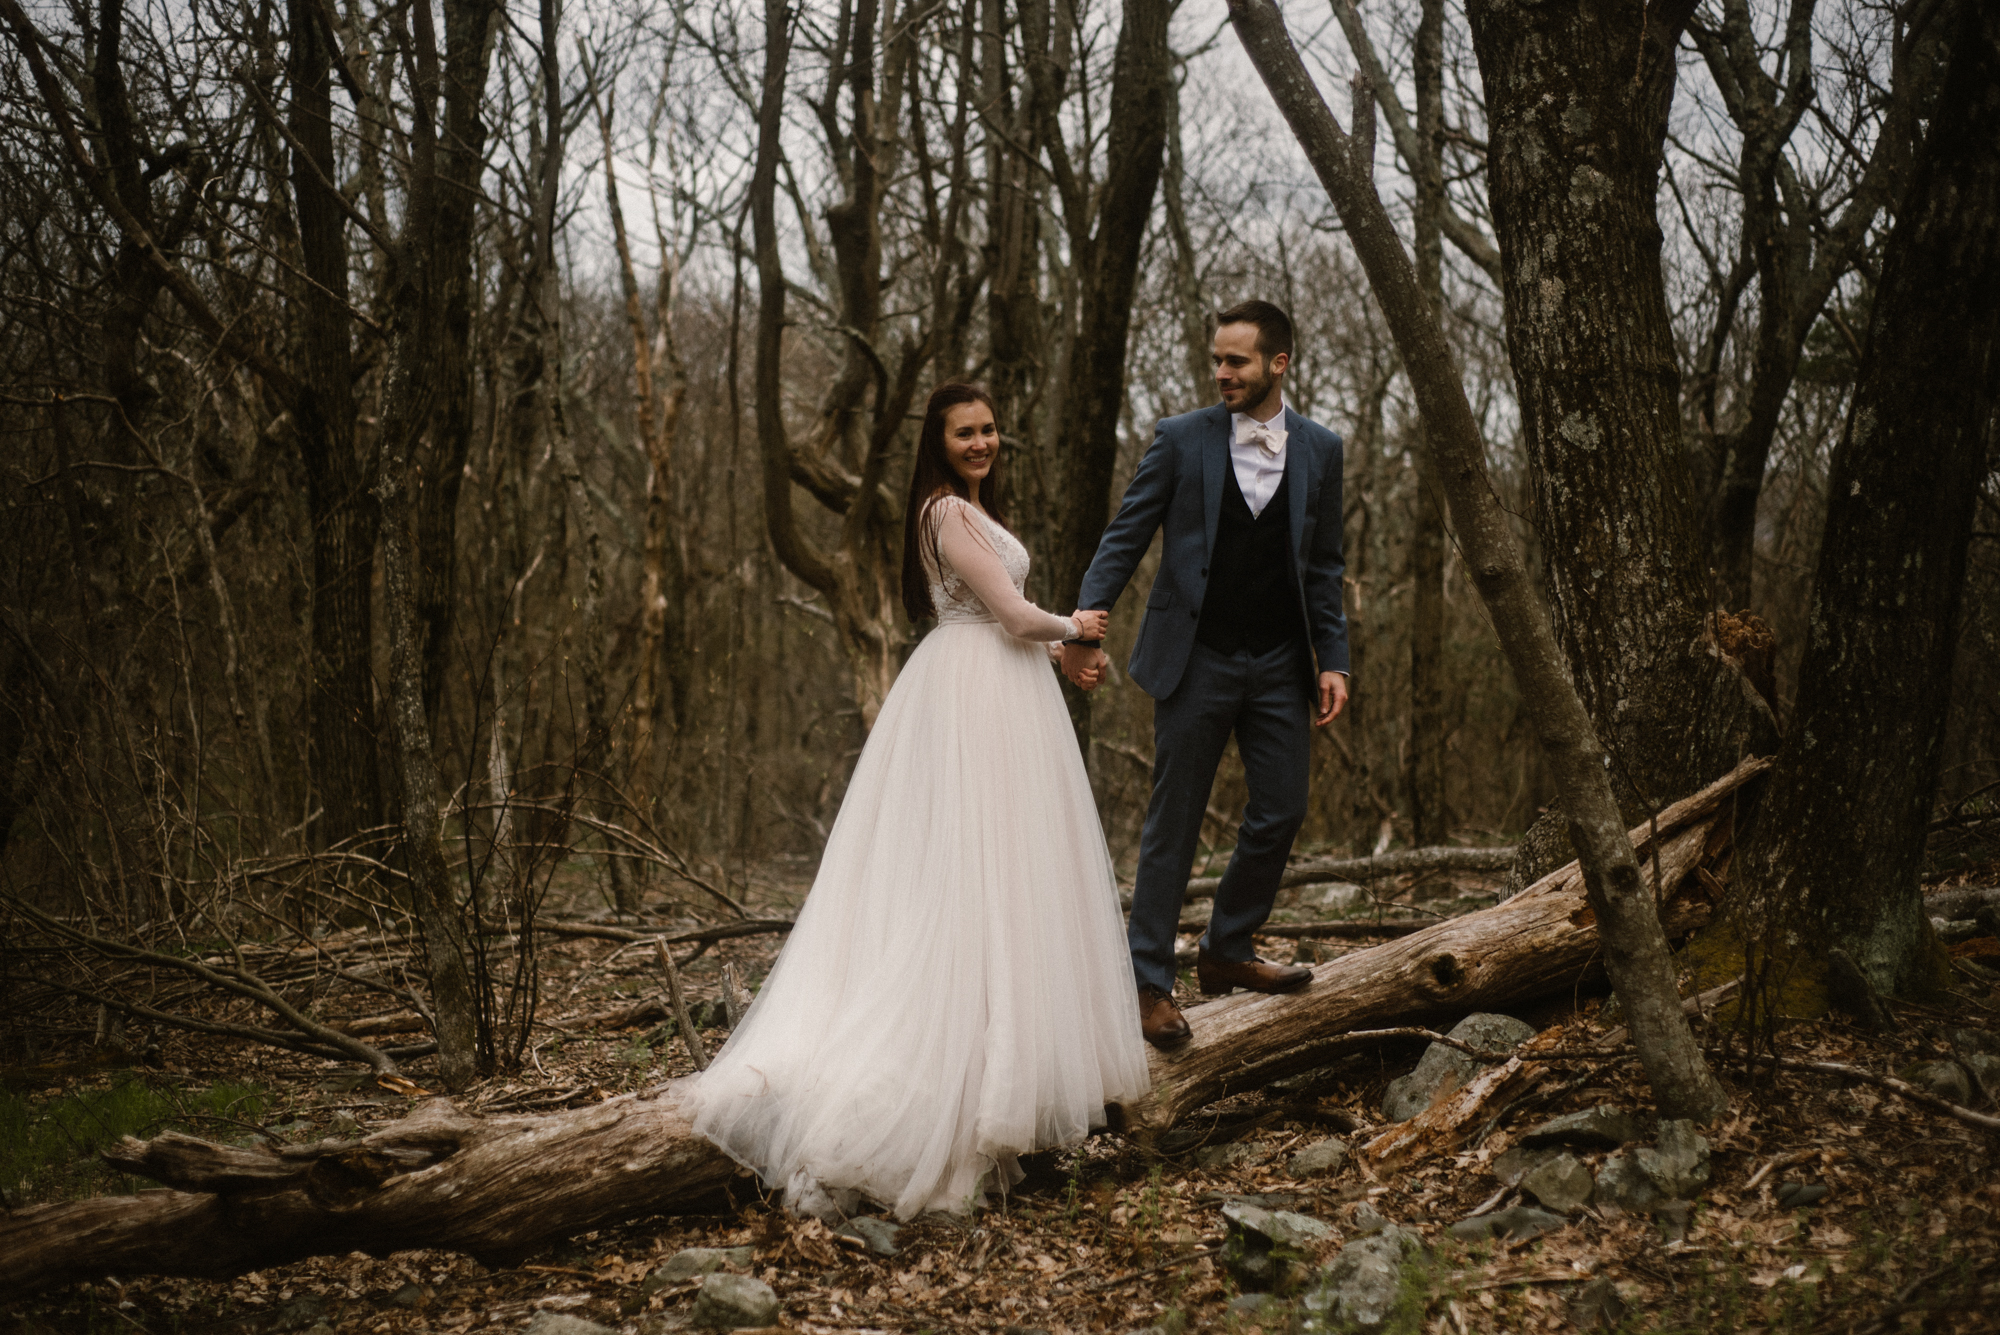 Paula and Andrew - Small Adventurous Wedding in Shenandoah National Park - Blue Ridge Mountain Wedding - White Sails Creative - Mountain Elopement_44.jpg